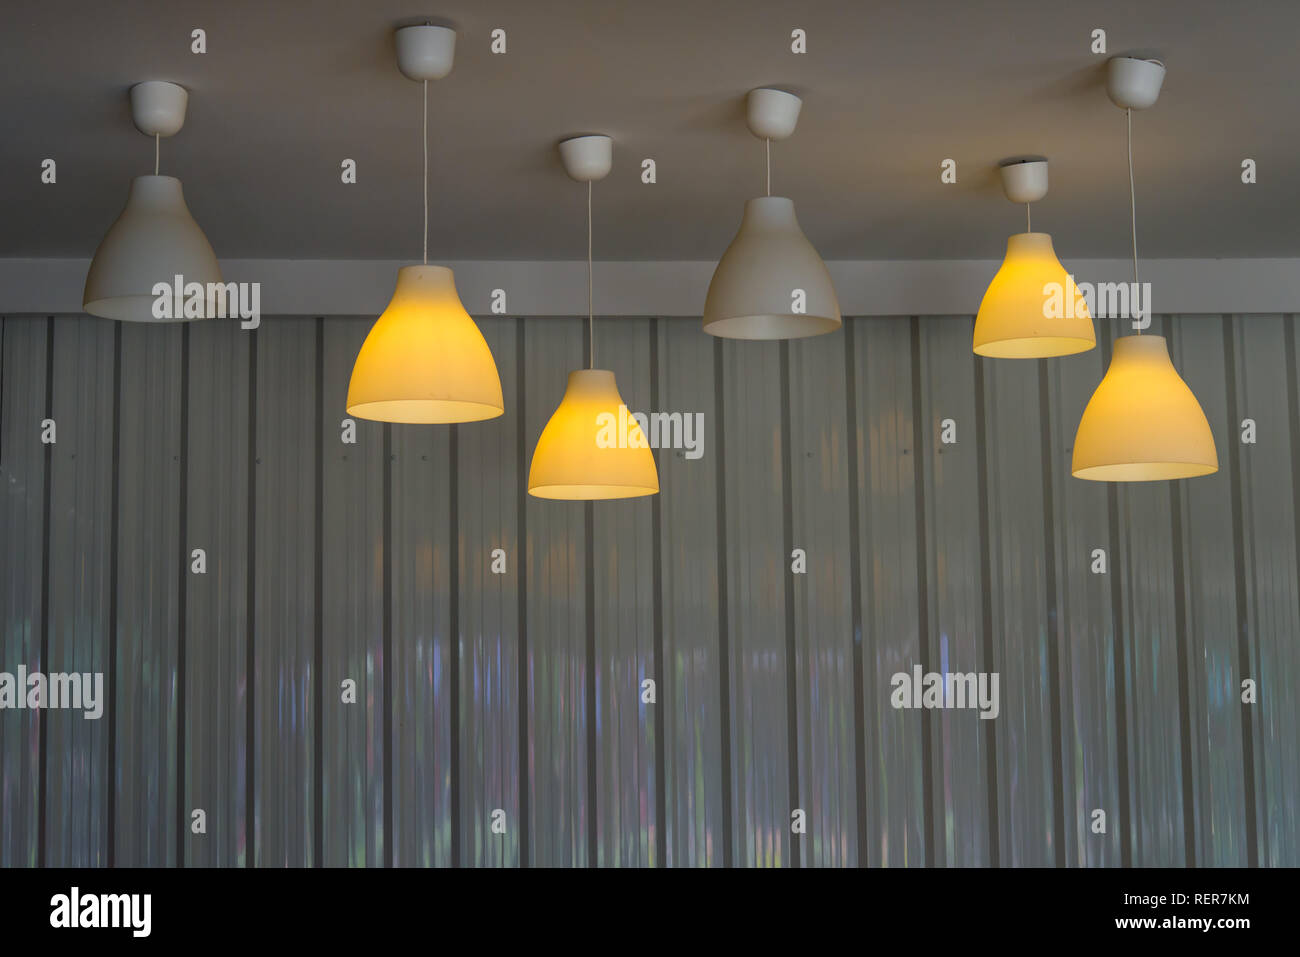 Recessed Ceiling Lights In A Coffee Shop Stock Photo Alamy